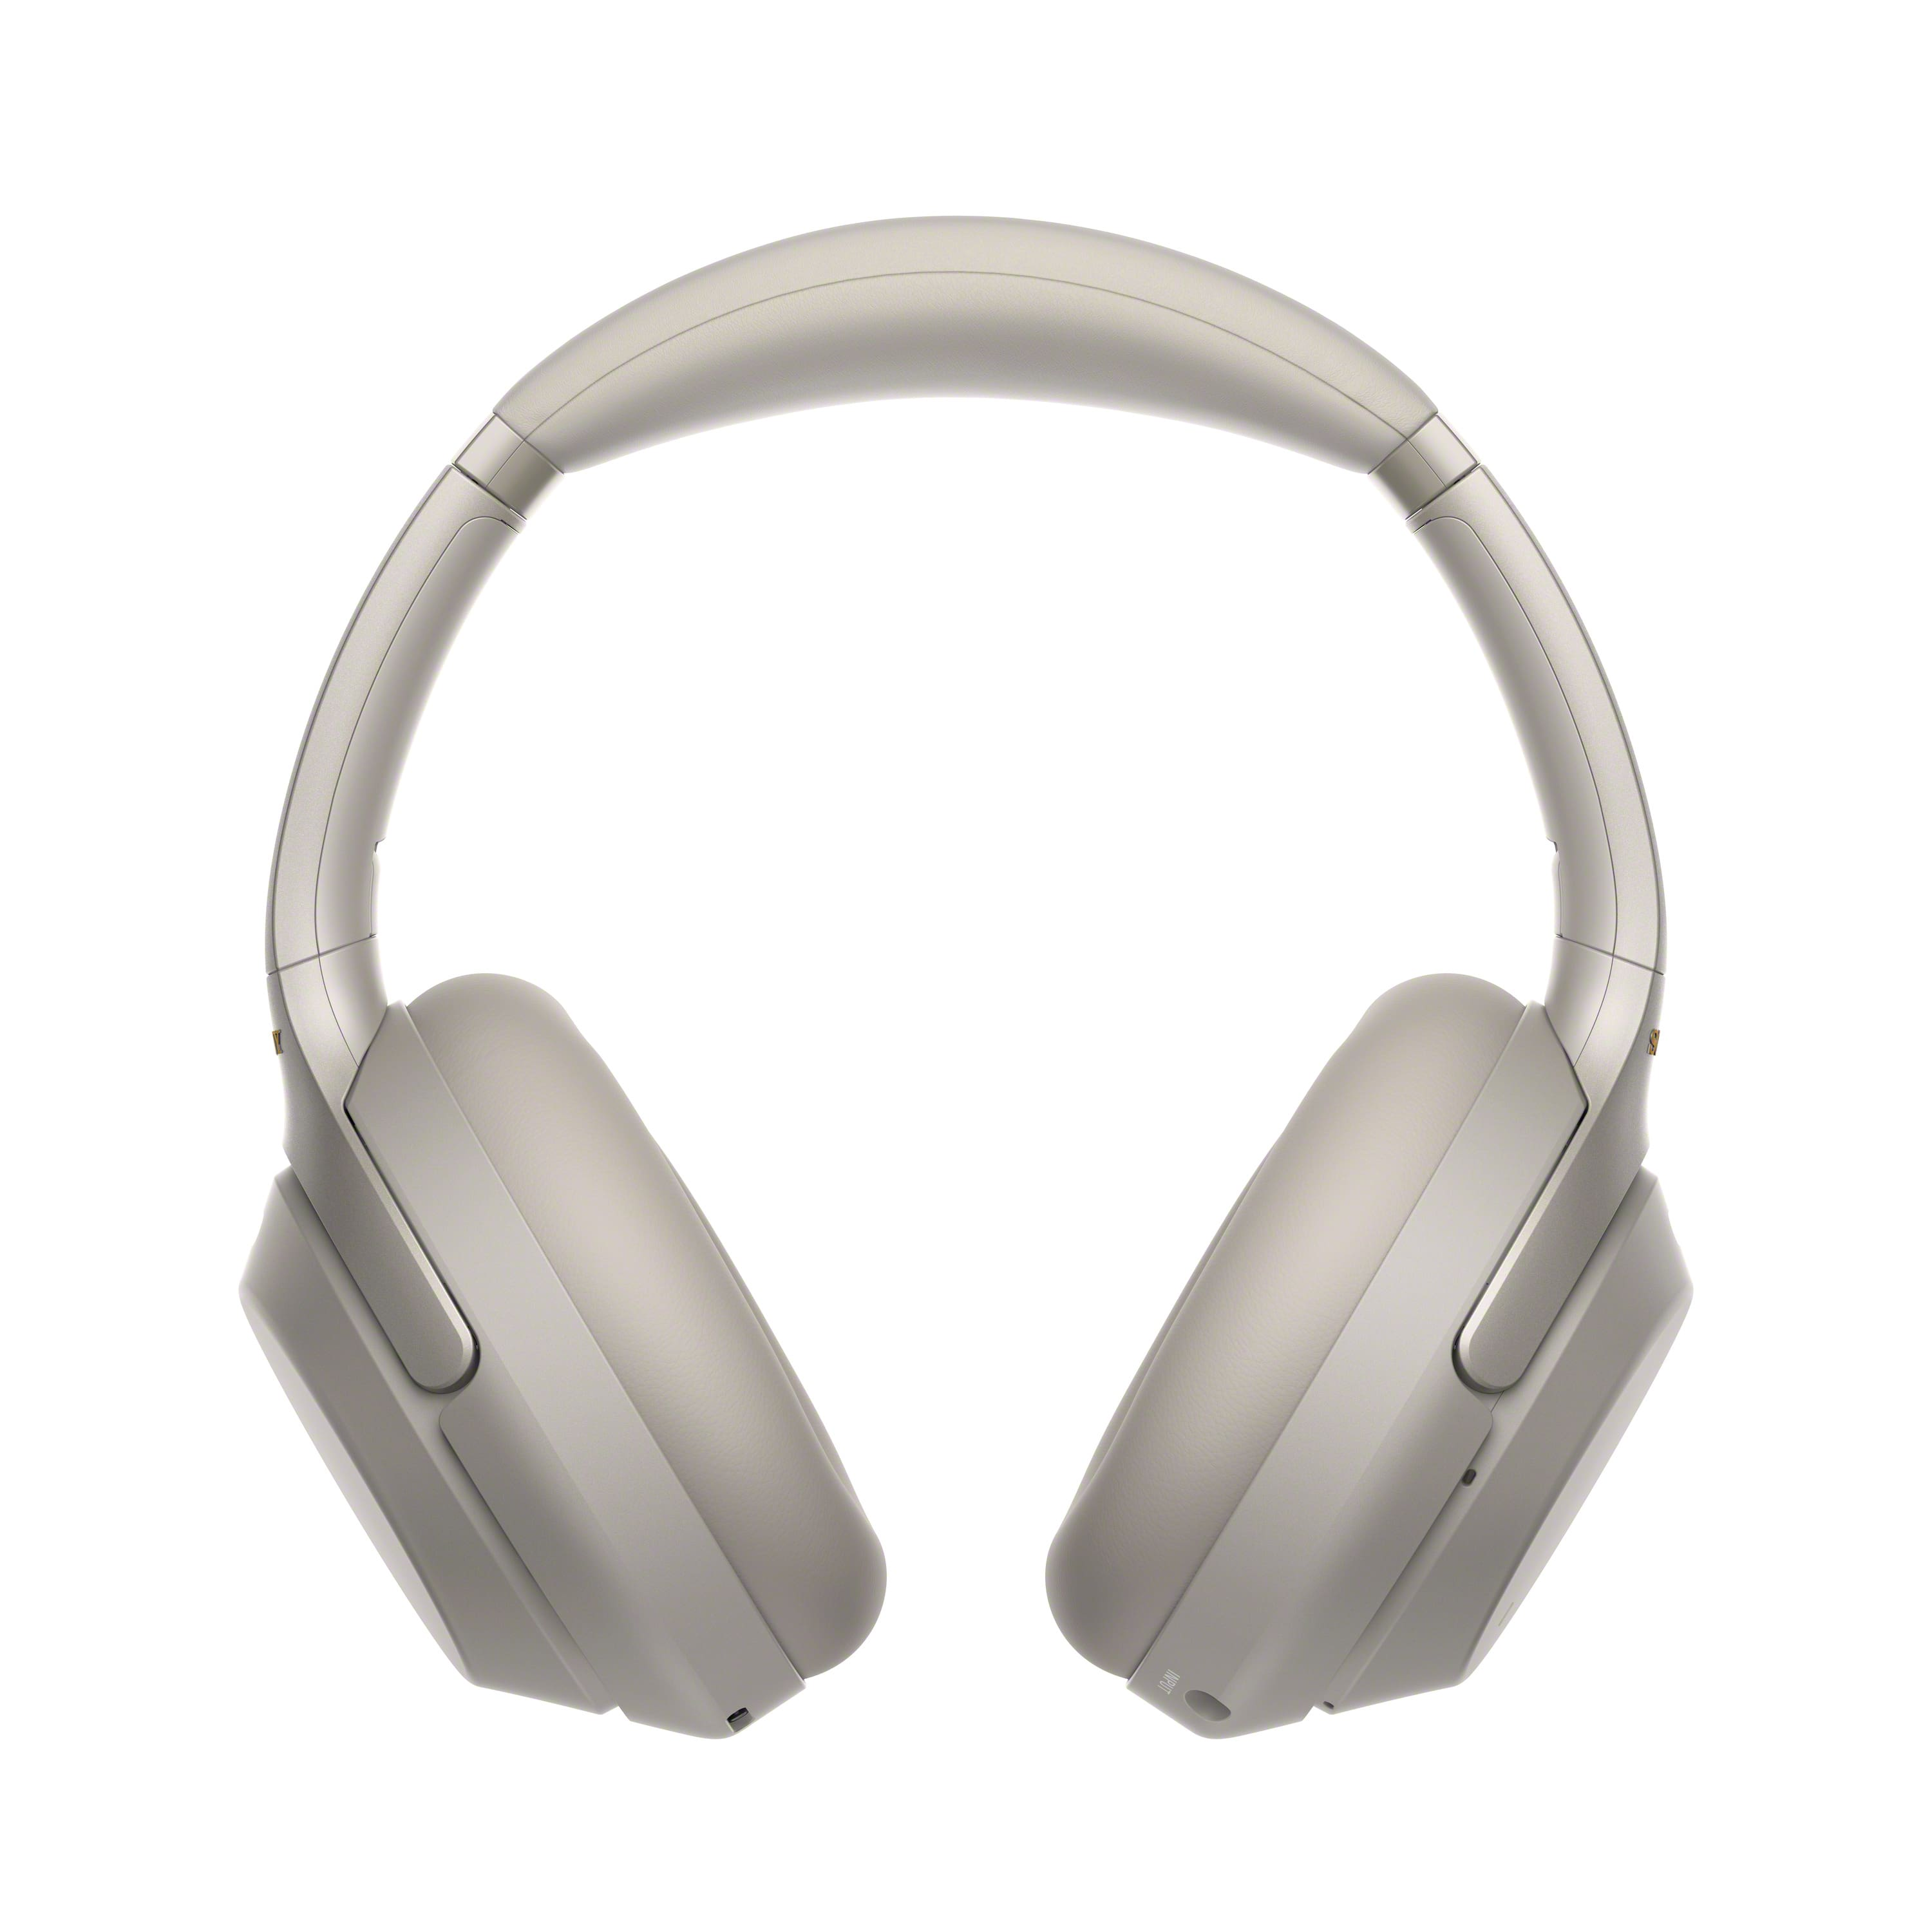 Sony WH-1000XM3 Wireless Noise Canceling Over-Ear Headphones w/ Google Assistant (Manufacturer Refurbished) for $230 + Free Shipping (eBay Daily Deal)